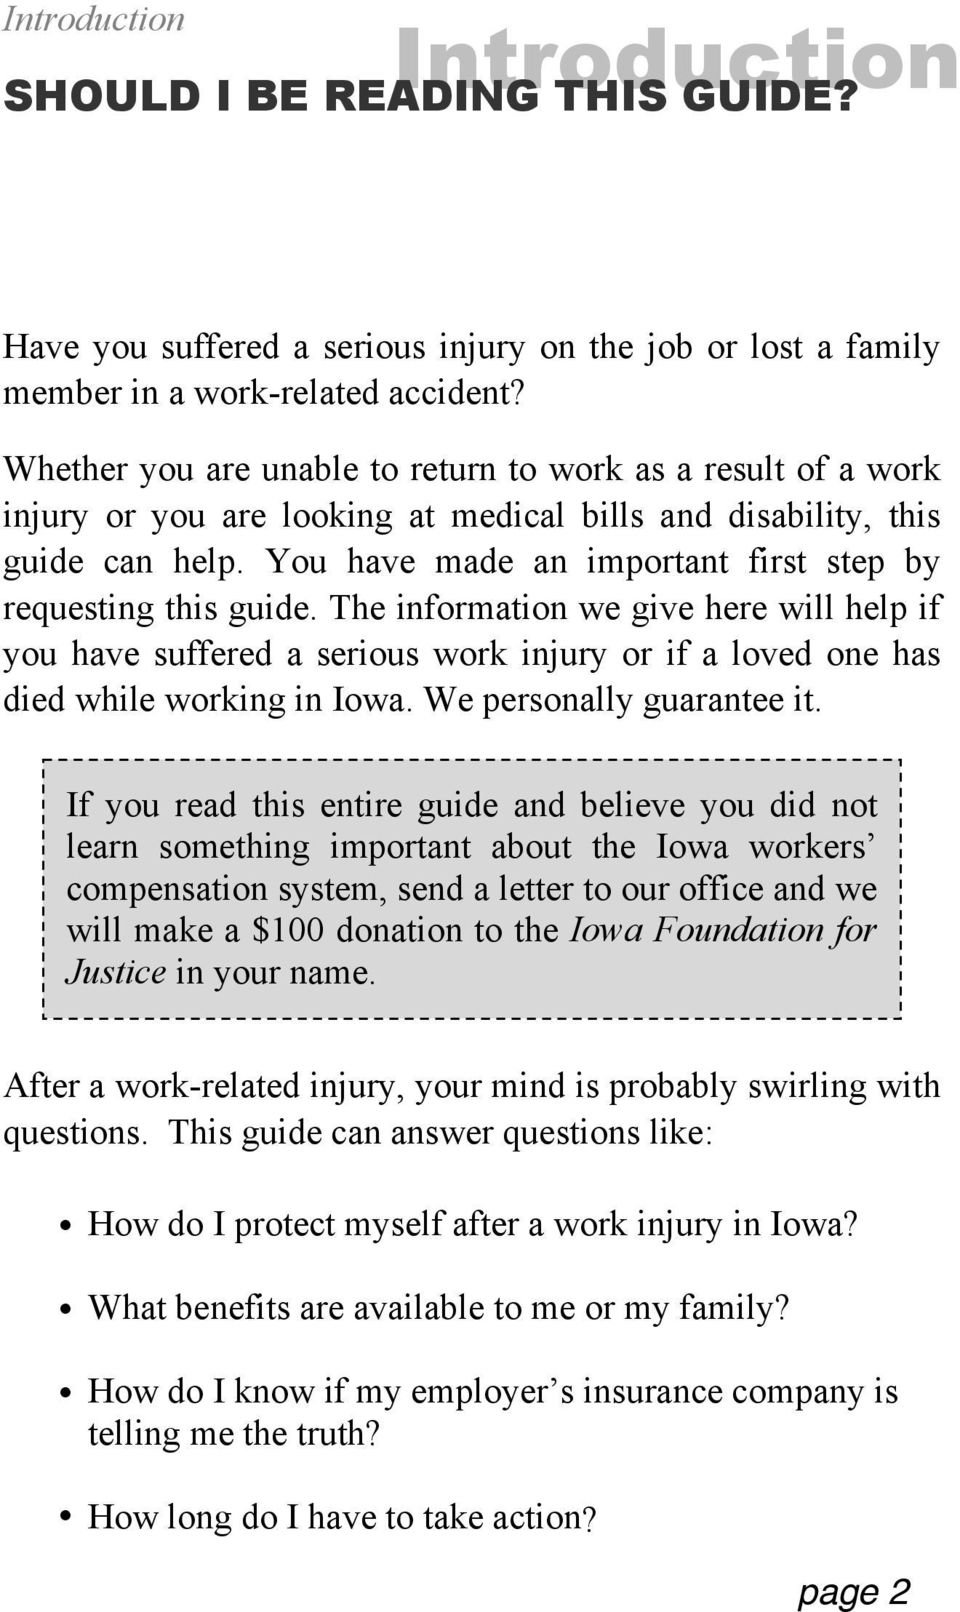 You have made an important first step by requesting this guide. The information we give here will help if you have suffered a serious work injury or if a loved one has died while working in Iowa.